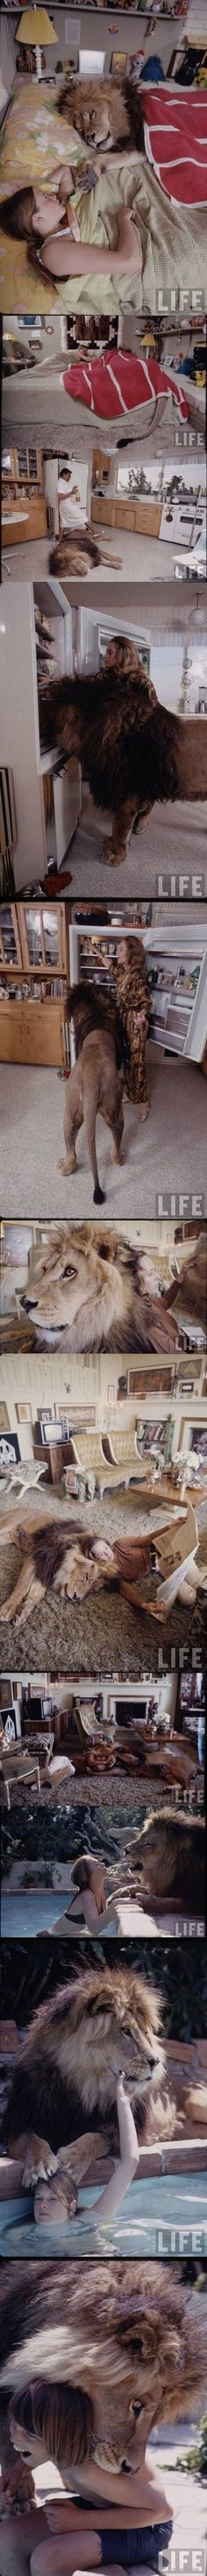 Tippi Hedren (mother of Melanie Griffith) shared her home with a full grown lion named Neil in the 1980s.